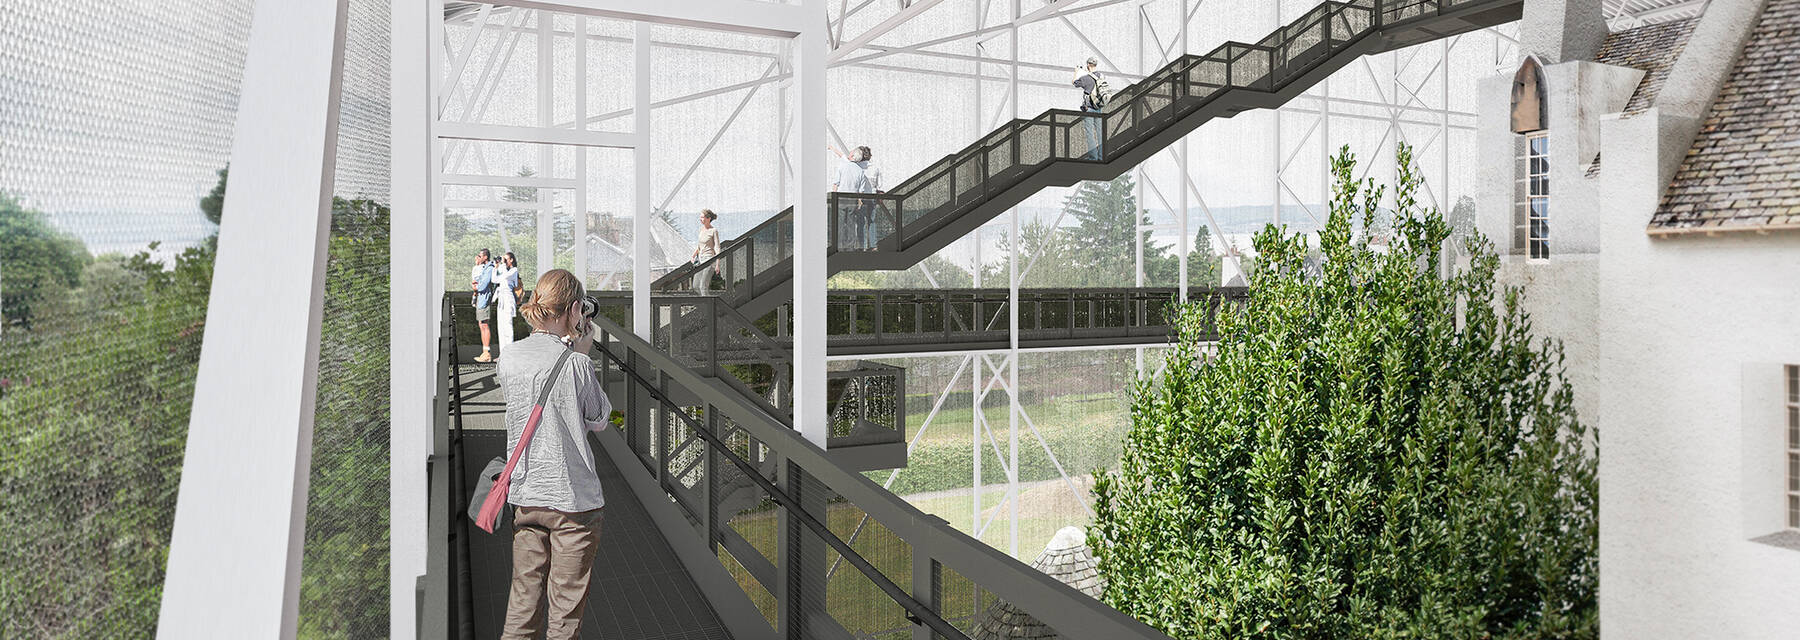 An artist's impression of the roof-top walkway of the Box